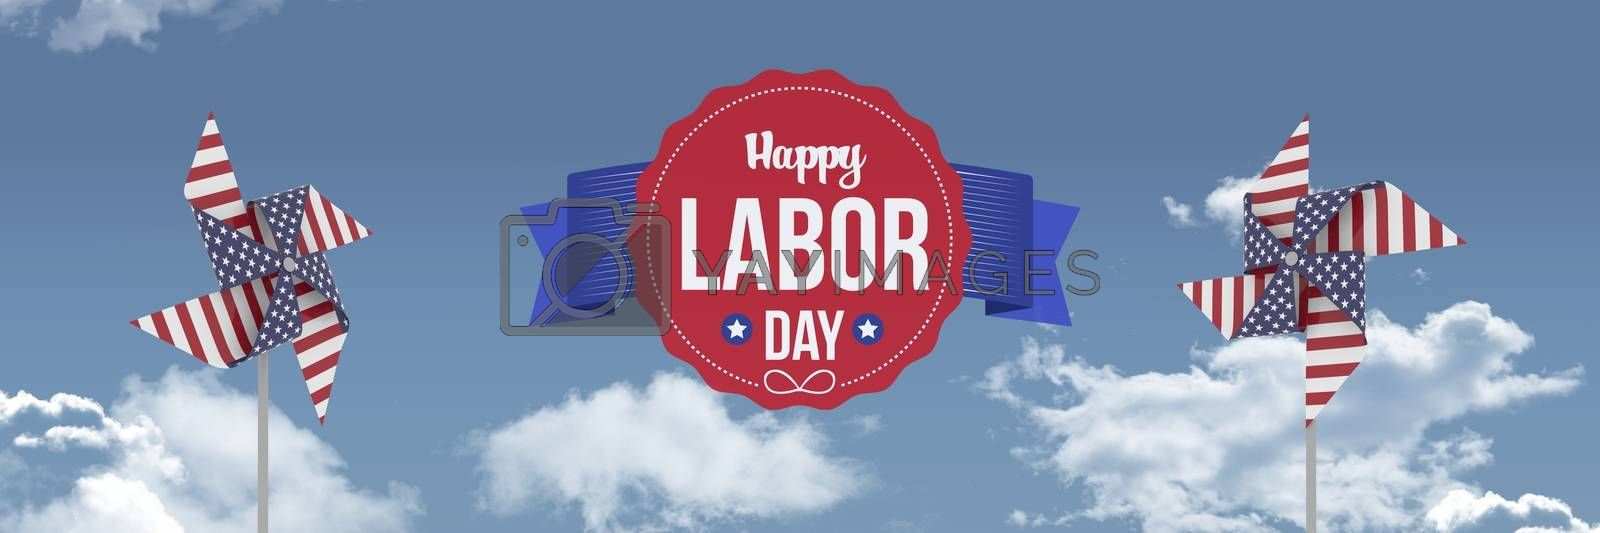 Happy labor day text and USA wind catchers in front of sky by Wavebreakmedia